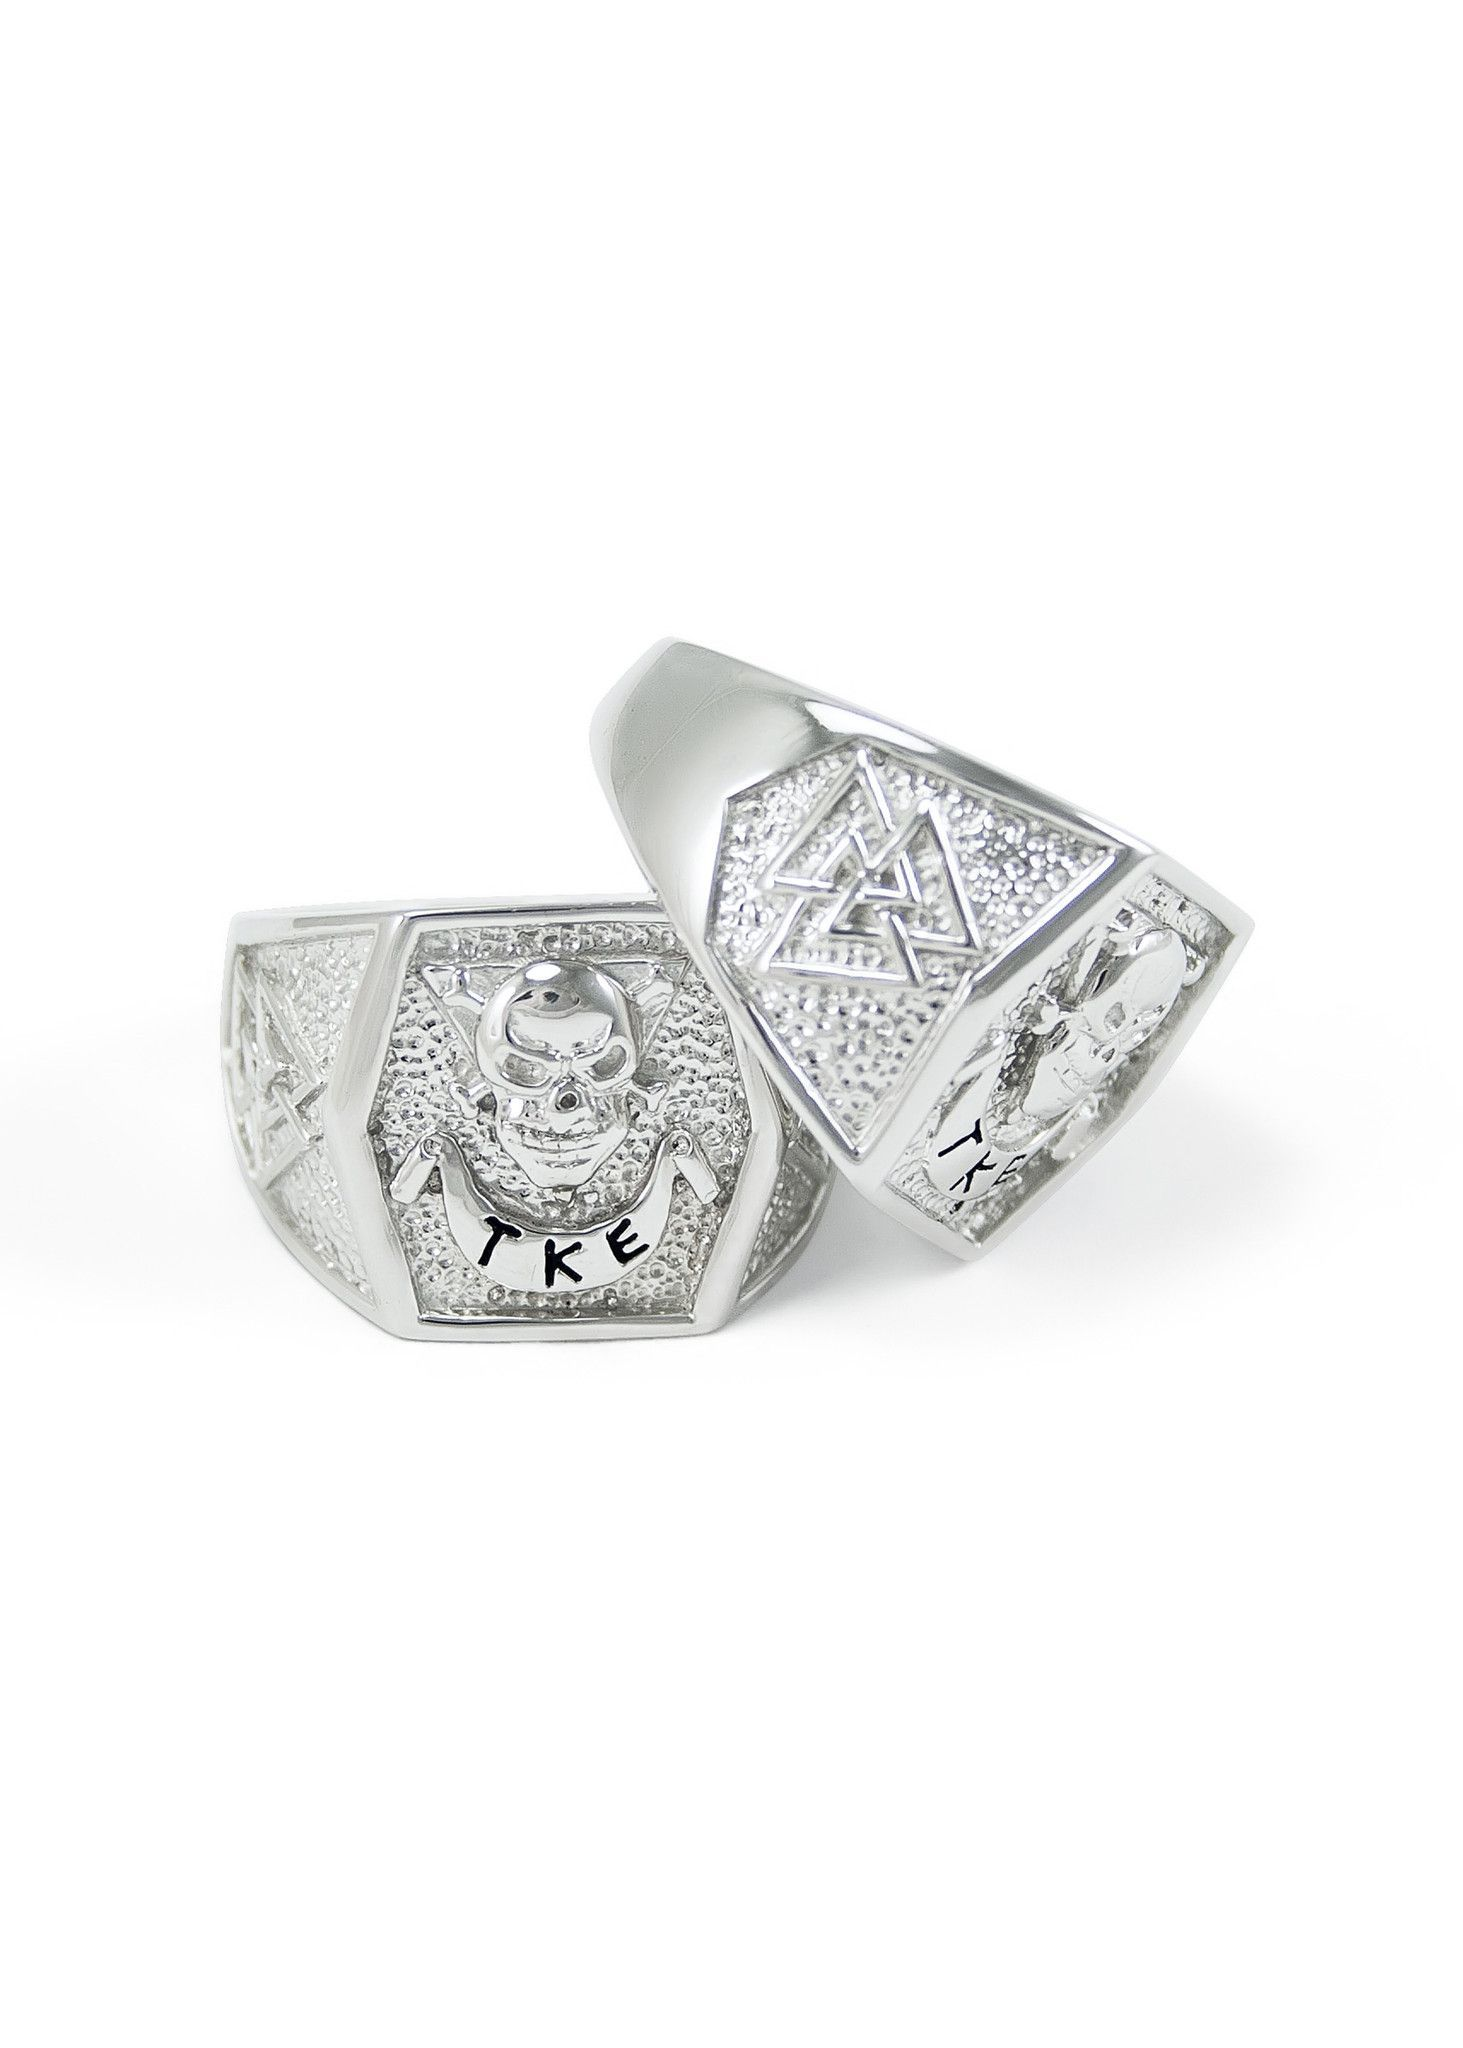 Sterling Silver Tau Kappa Epsilon Badge Ring with LLT Triangles